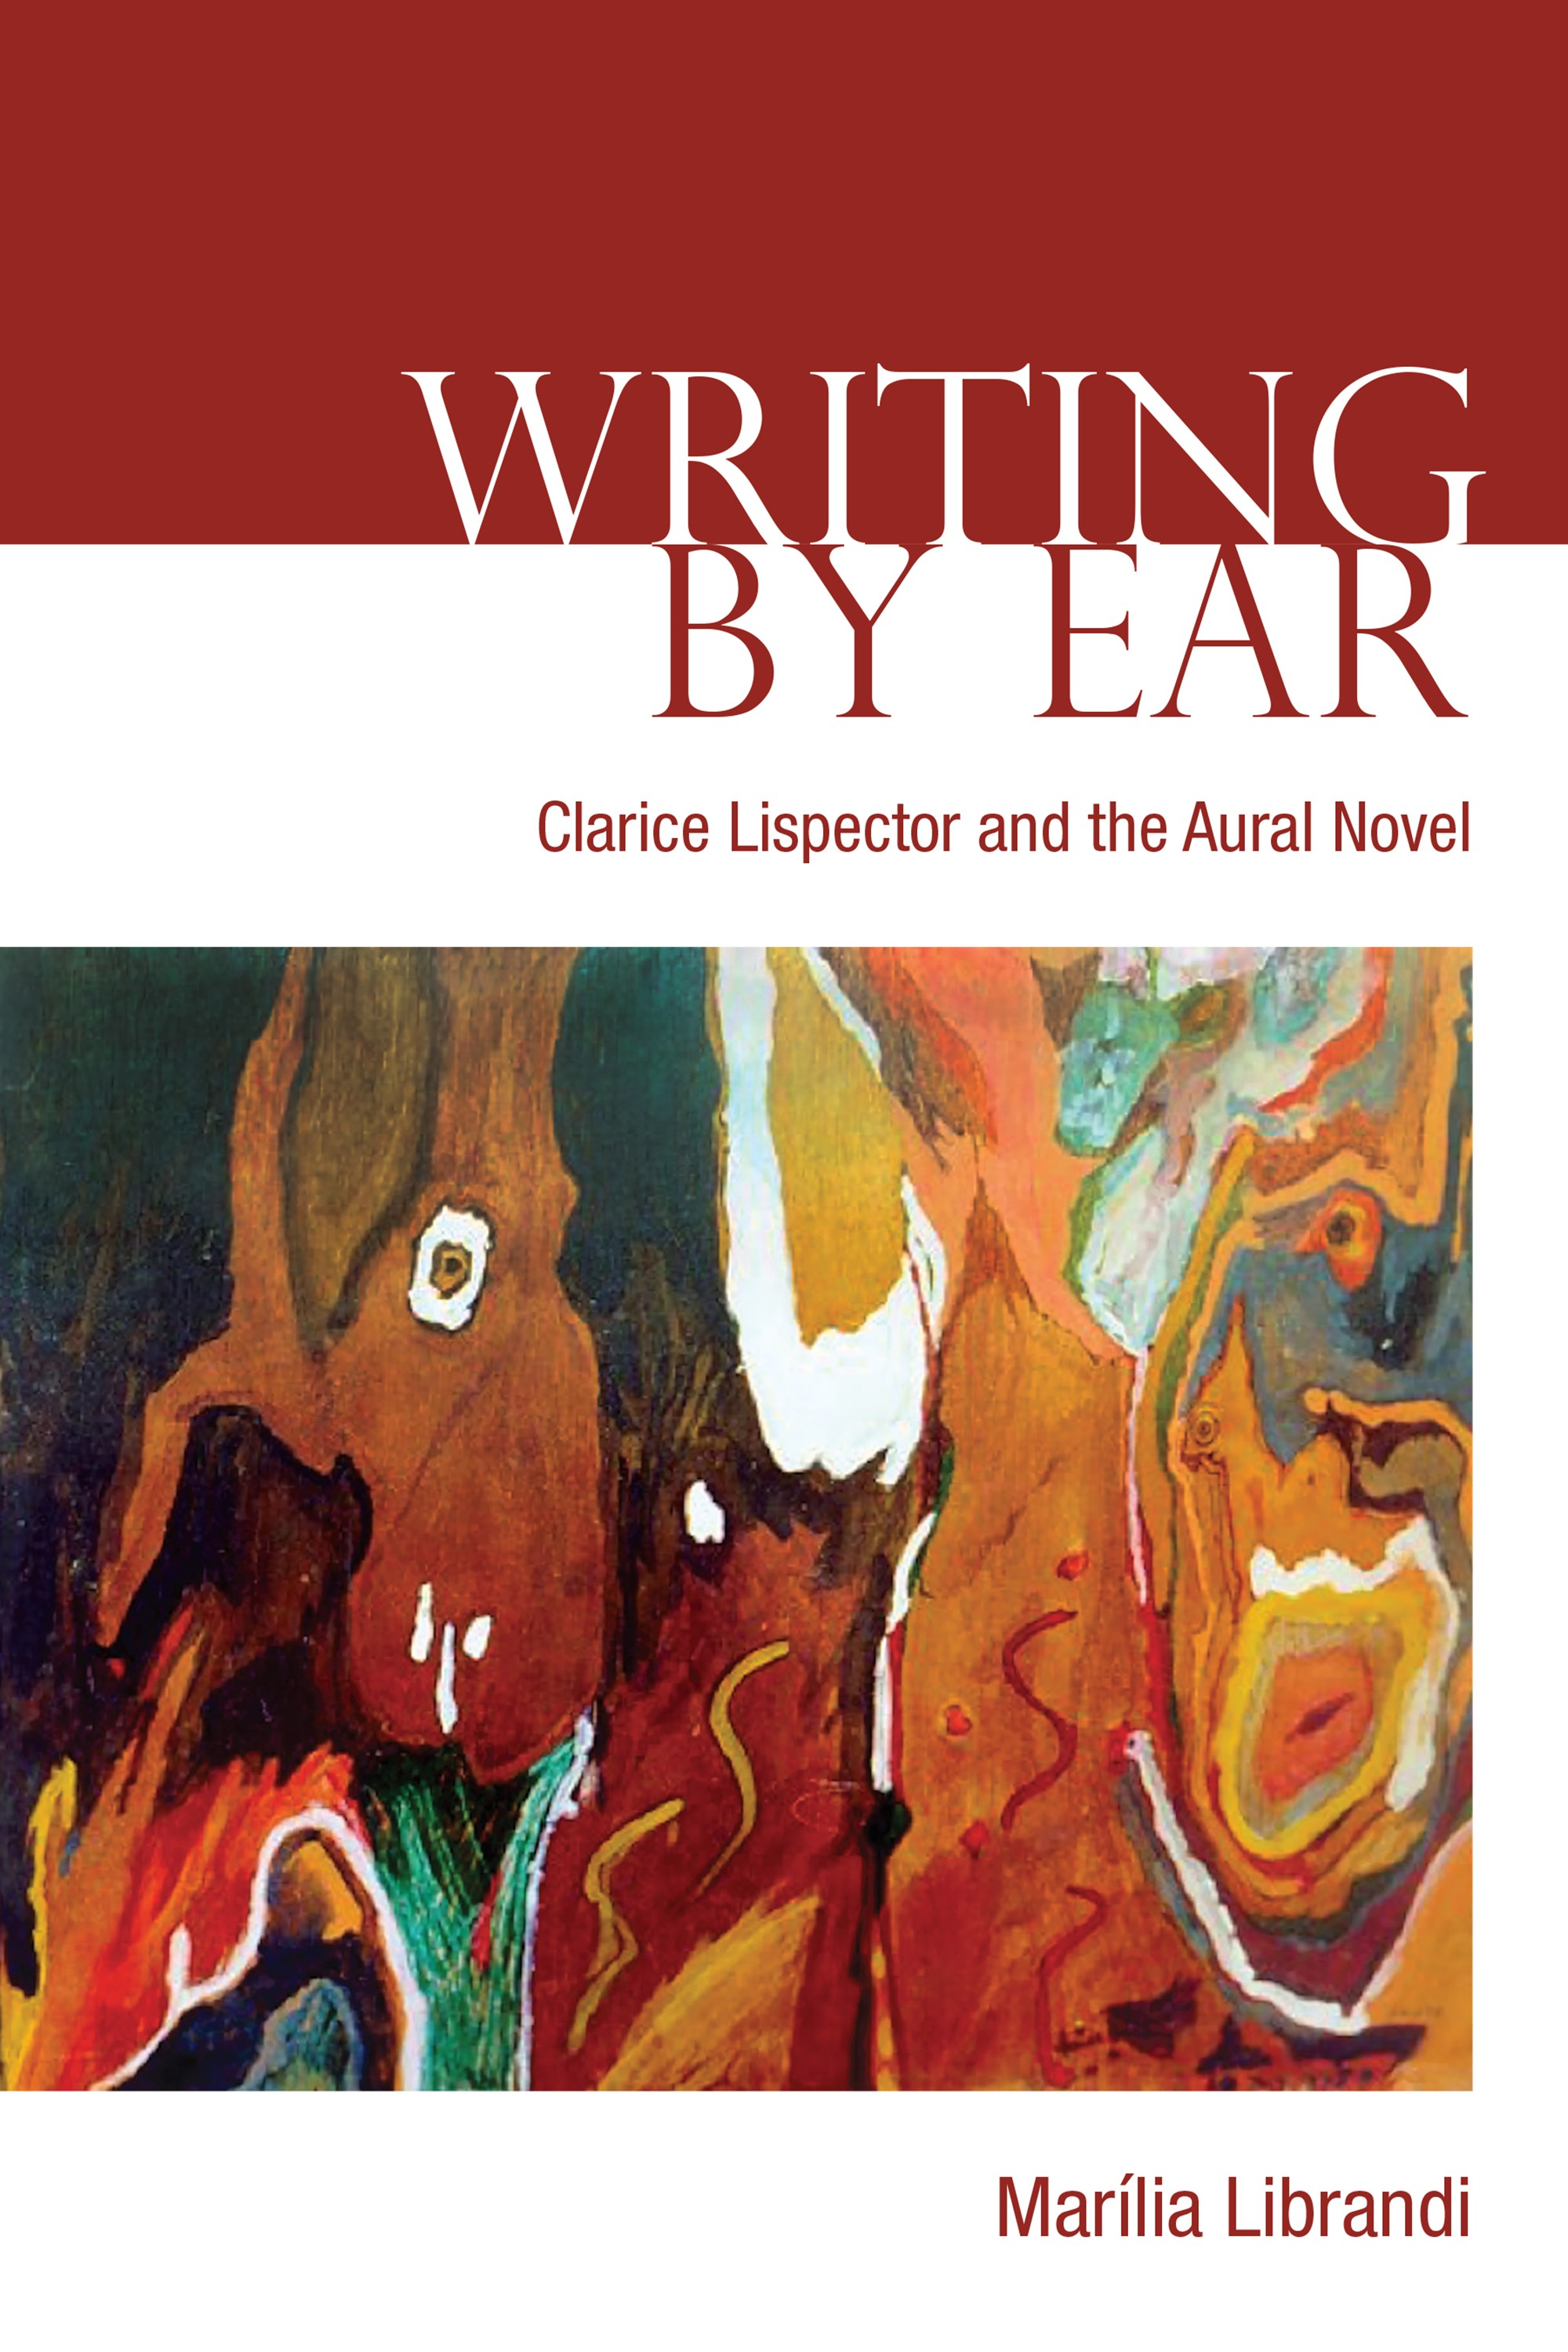 """- https://utorontopress.com/us/writing-by-ear-2Series: University of Toronto Romance SeriesConsidering Brazilian novelist Clarice Lispector's literature as a case study and a source of theory, Writing by Ear presents an aural theory of the novel.What is the specific aesthetic for which listening-in-writing calls? What is the relation that listening-in-writing establishes with silence, echo, and the sounds of the world? How are we to understand authorship when writers present themselves as objects of reception rather than subjects of production? In which ways does the robust oral and aural culture of Brazil shape literary genres and forms? In addressing these questions, Writing by Ear works in dialogue with philosophy, psychoanalysis, and sound studies to contemplate the relationship between orality and writing.Citing writers such as Machado de Assis, Oswald de Andrade and João Guimarães Rosa, as well as Mia Couto and Toni Morrison, Writing By Ear opens up a broader dialogue on listening and literature, considering the aesthetic, ethical, and ecological reverberations of the imaginary. Writing by Ear is concerned at once with shedding light on the narrative representation of listening and with a broader reconceptualization of fiction through listening, considering it an auditory practice that transcends the dichotomy of speech and writing, and it can be considered part of a """"listening turn"""" in literary studies."""